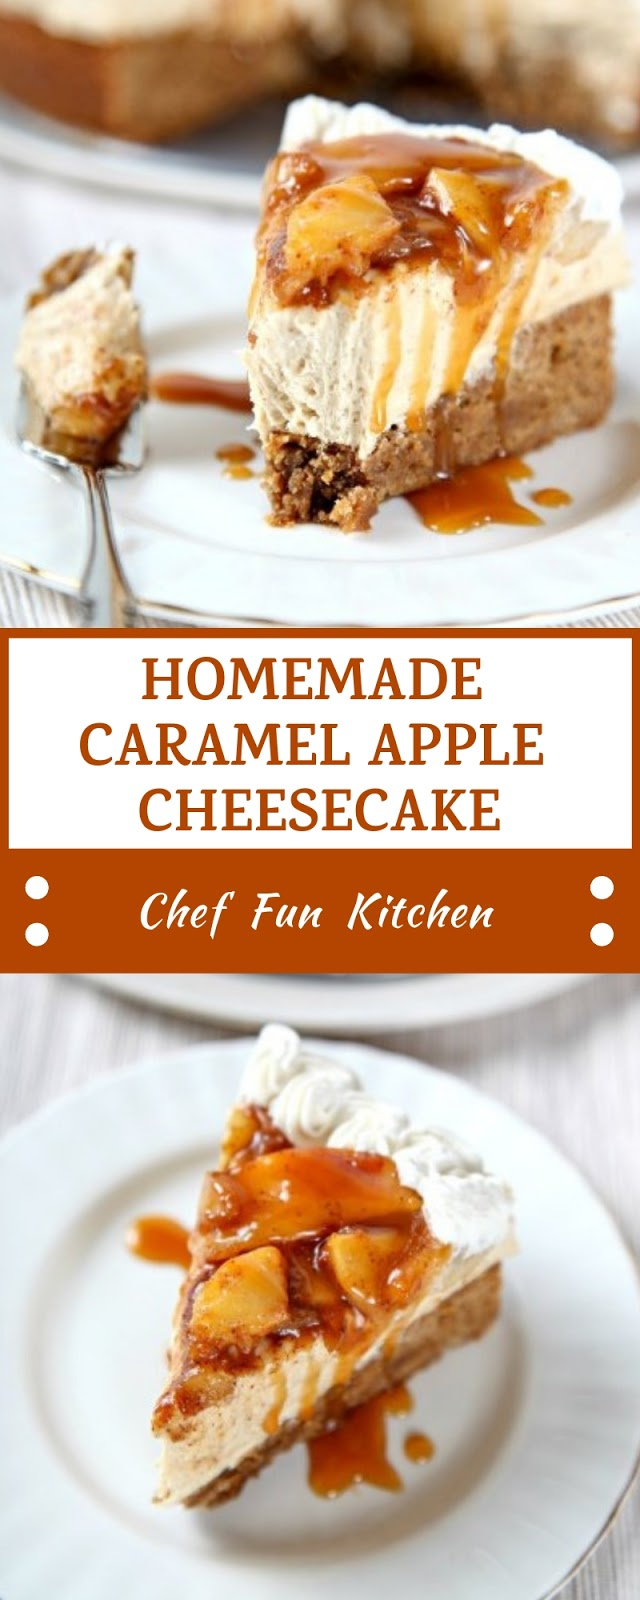 HOMEMADE CARAMEL APPLE CHEESECAKE